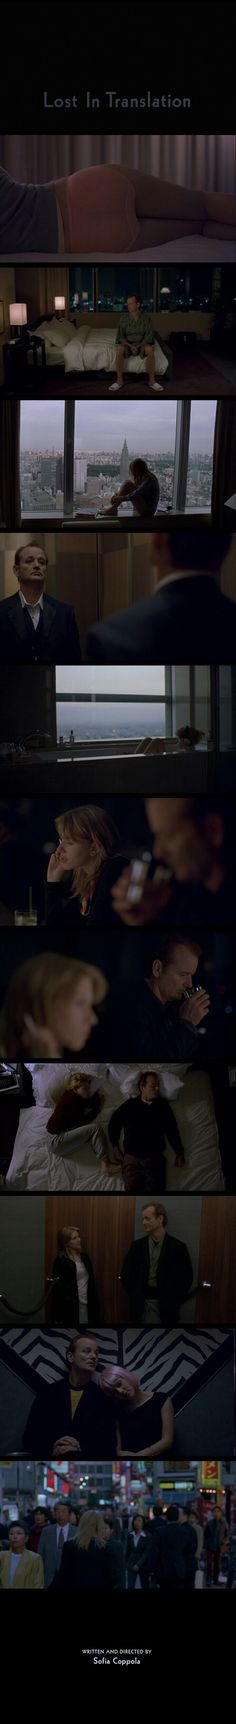 Lost In Translation(2003). Written and Directed by Sofia Coppla